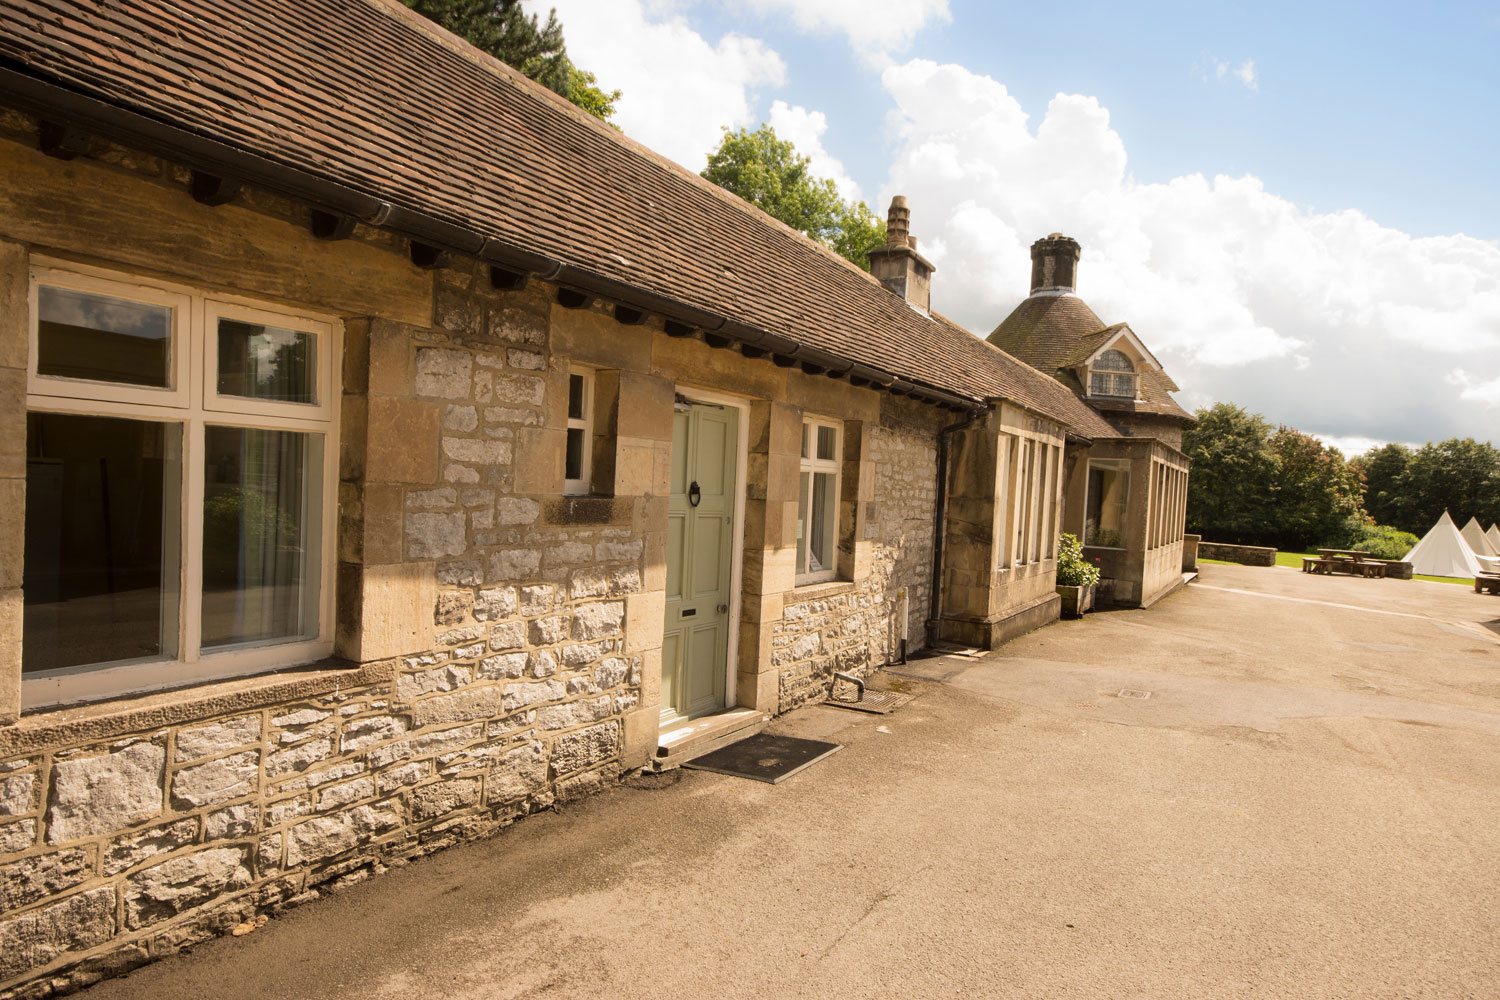 Thornbridge Outdoors, Farm House, Exterior